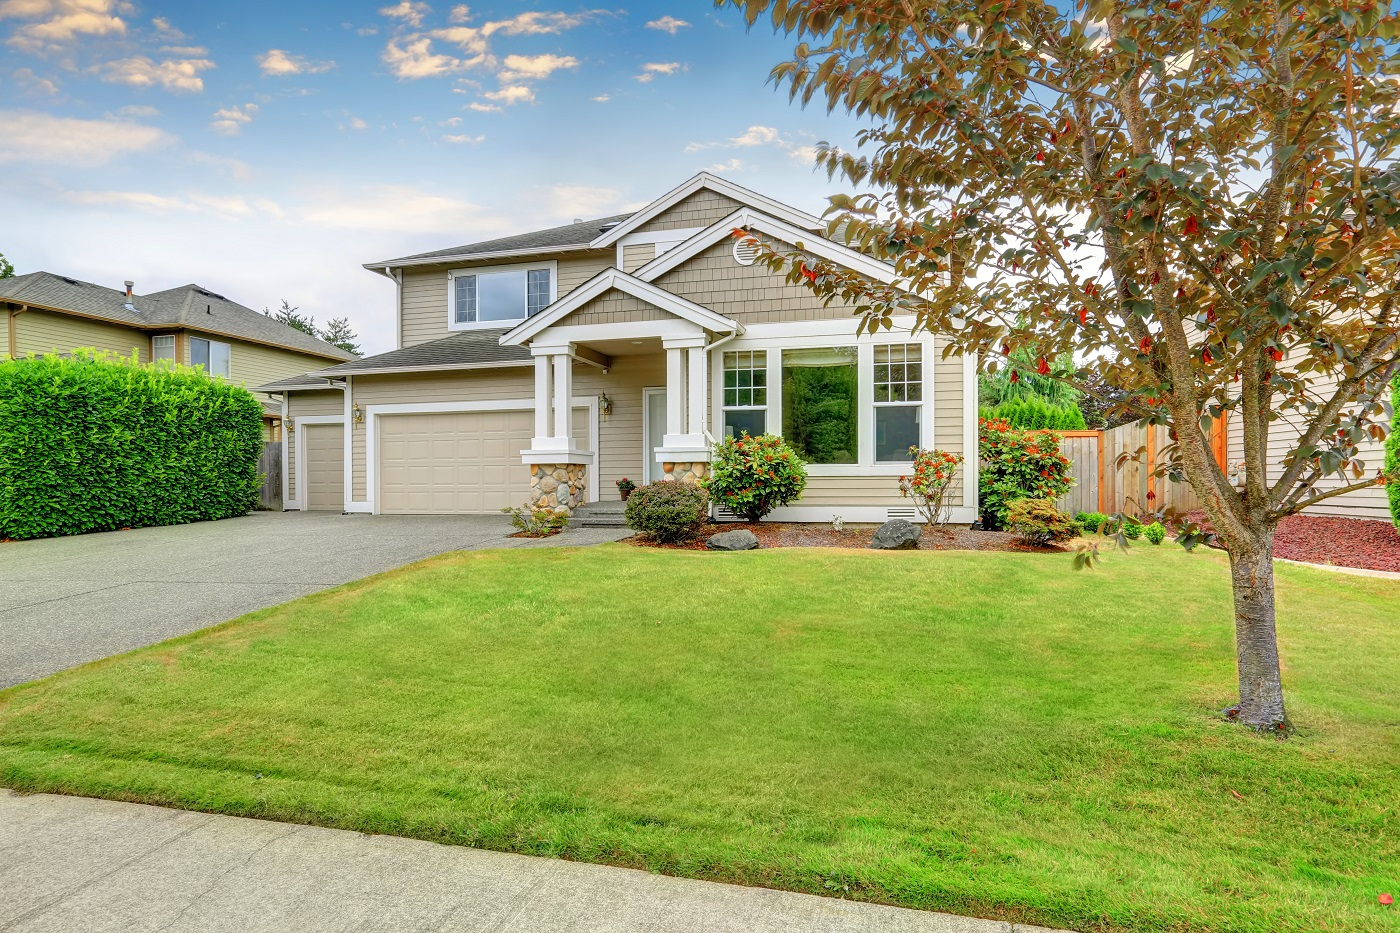 Study: Spring is Best Time to Sell a Home